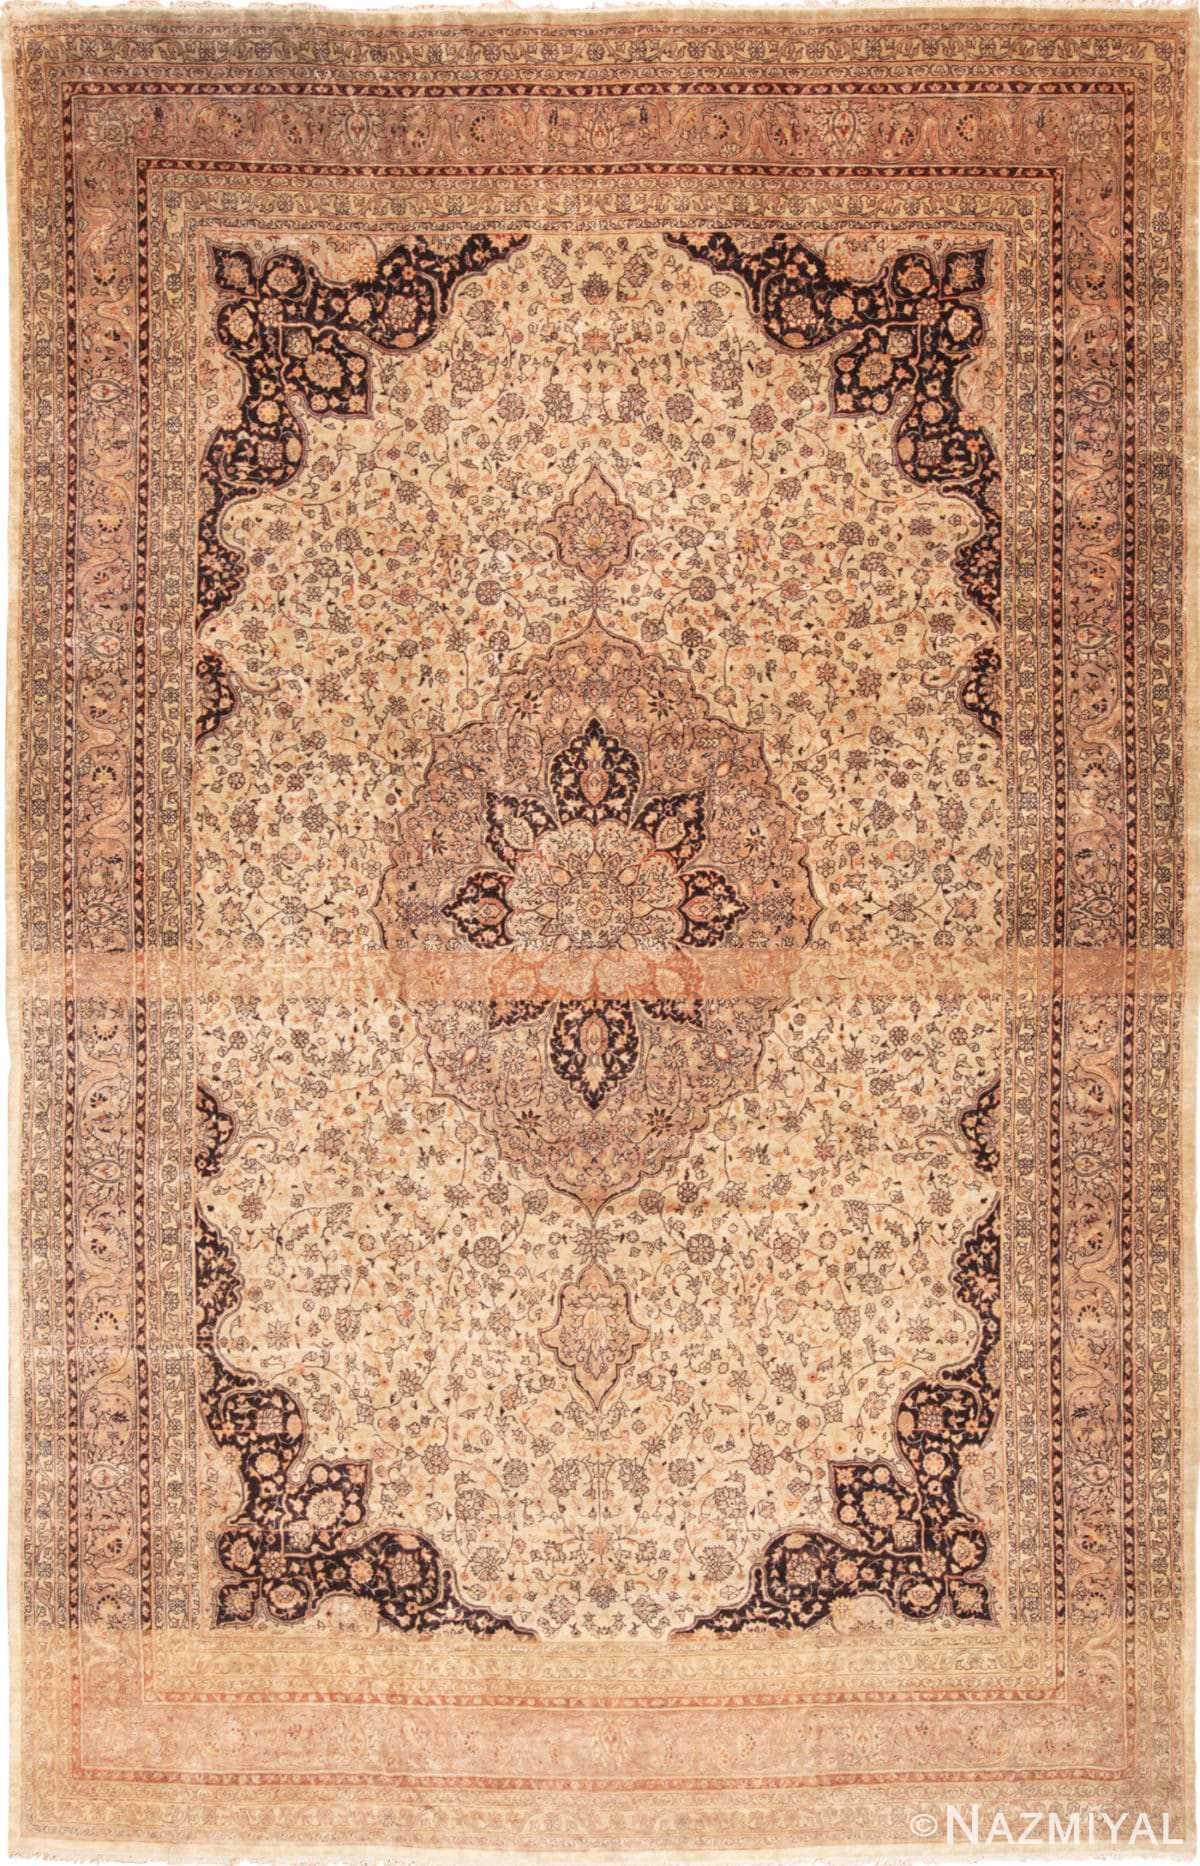 Full view Large floral Ivory and gray Antique Turkish Sivas rug 50416 by Nazmiyal